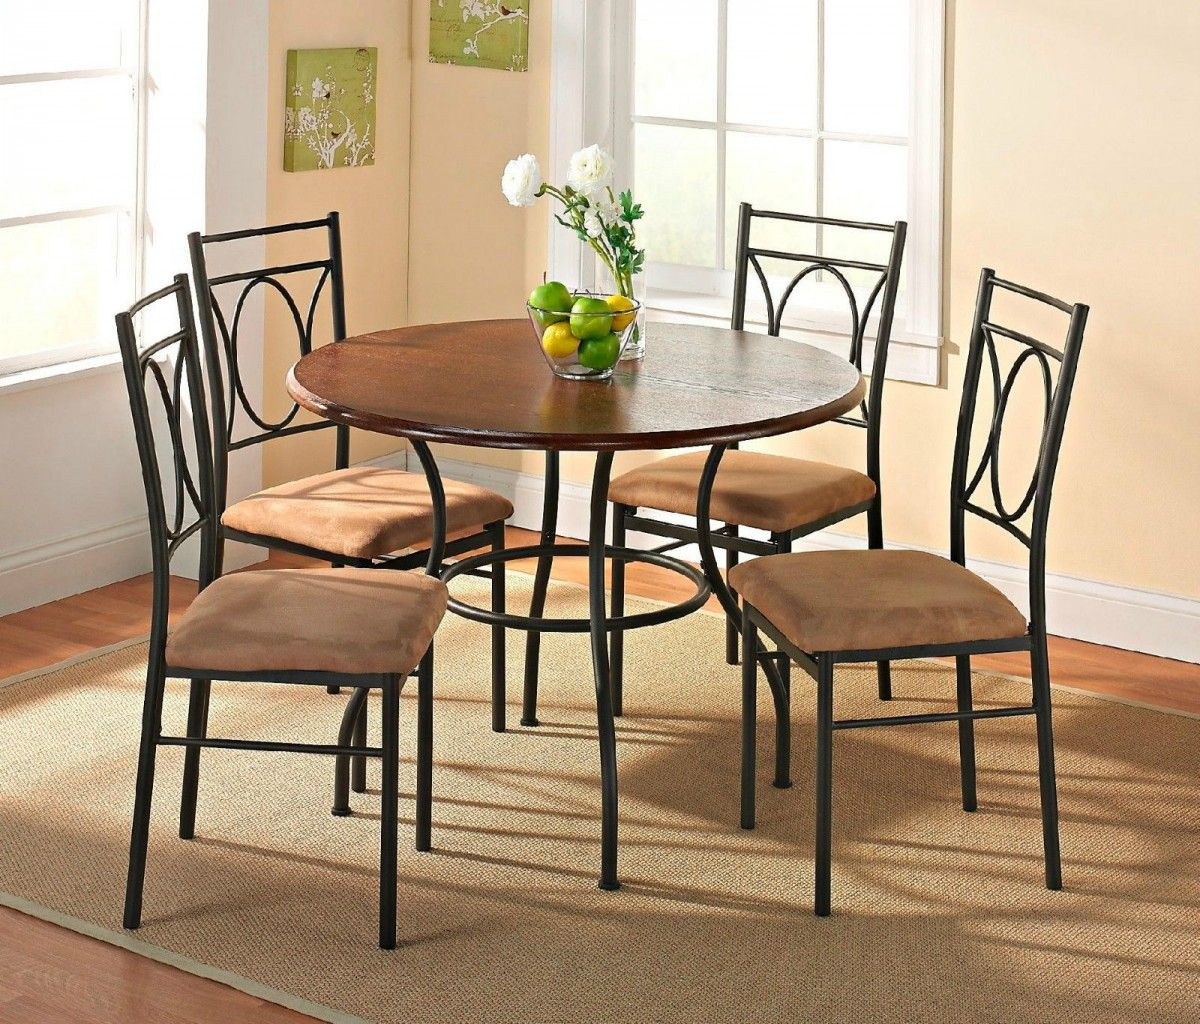 Dining Chairs For Small Spaces  Design Ideas 20172018 Mesmerizing Dining Room Sets For Small Spaces Design Ideas